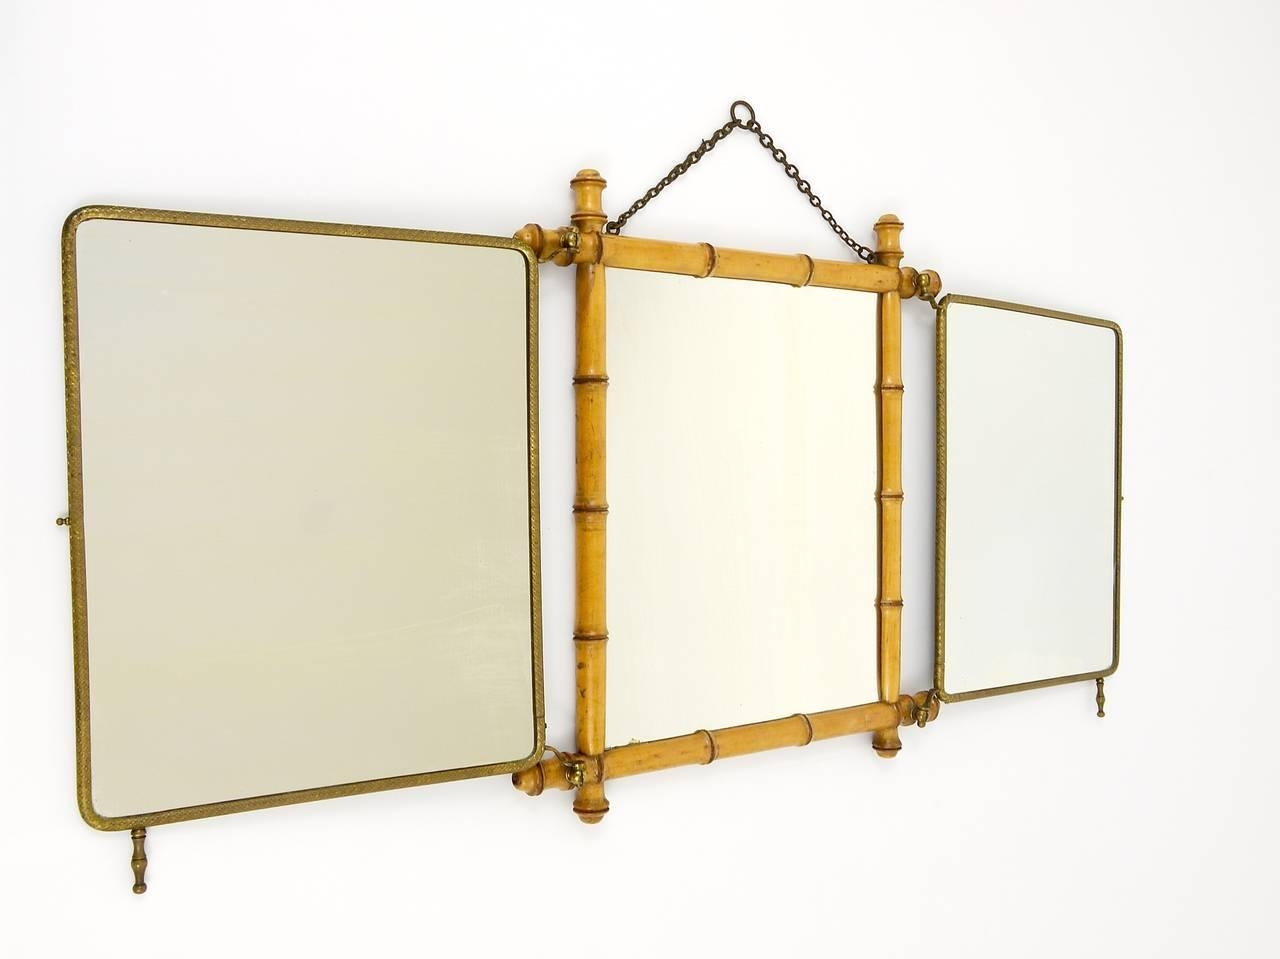 French Faux Bamboo And Brass Triple Vanity Table Mirror Or Wall Inside Triple Wall Mirror (Image 7 of 20)